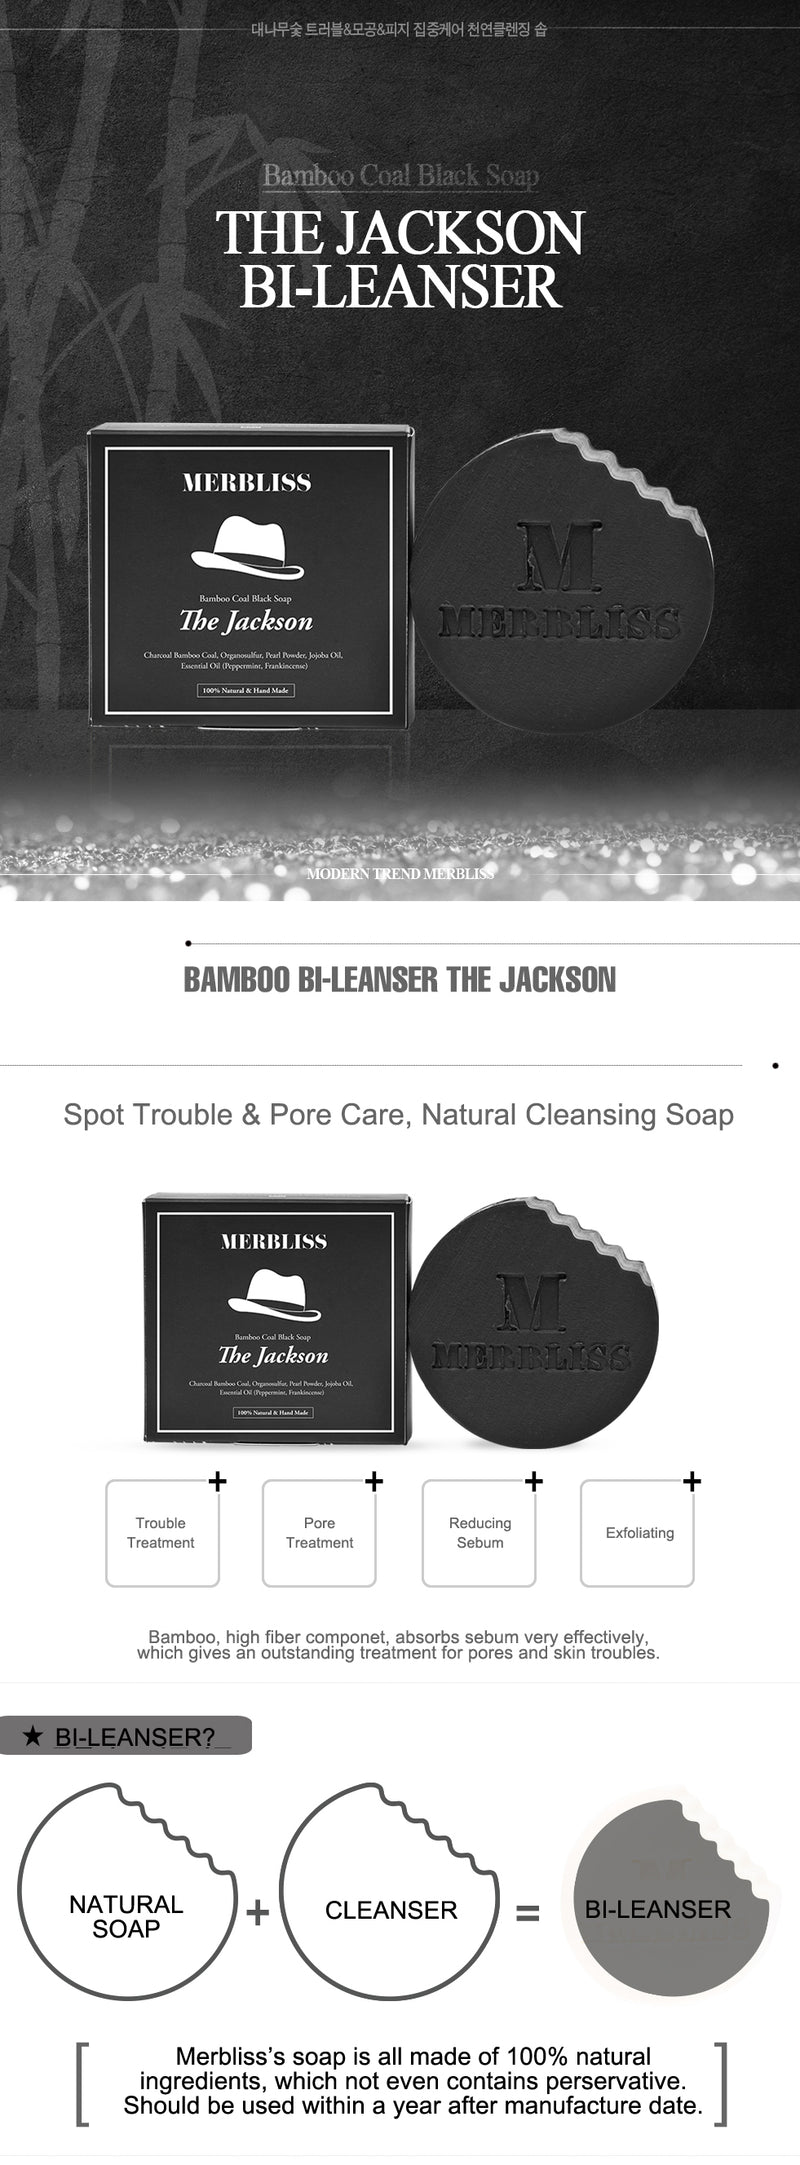 Merbliss The Jackson Bamboo Coal Black Soap